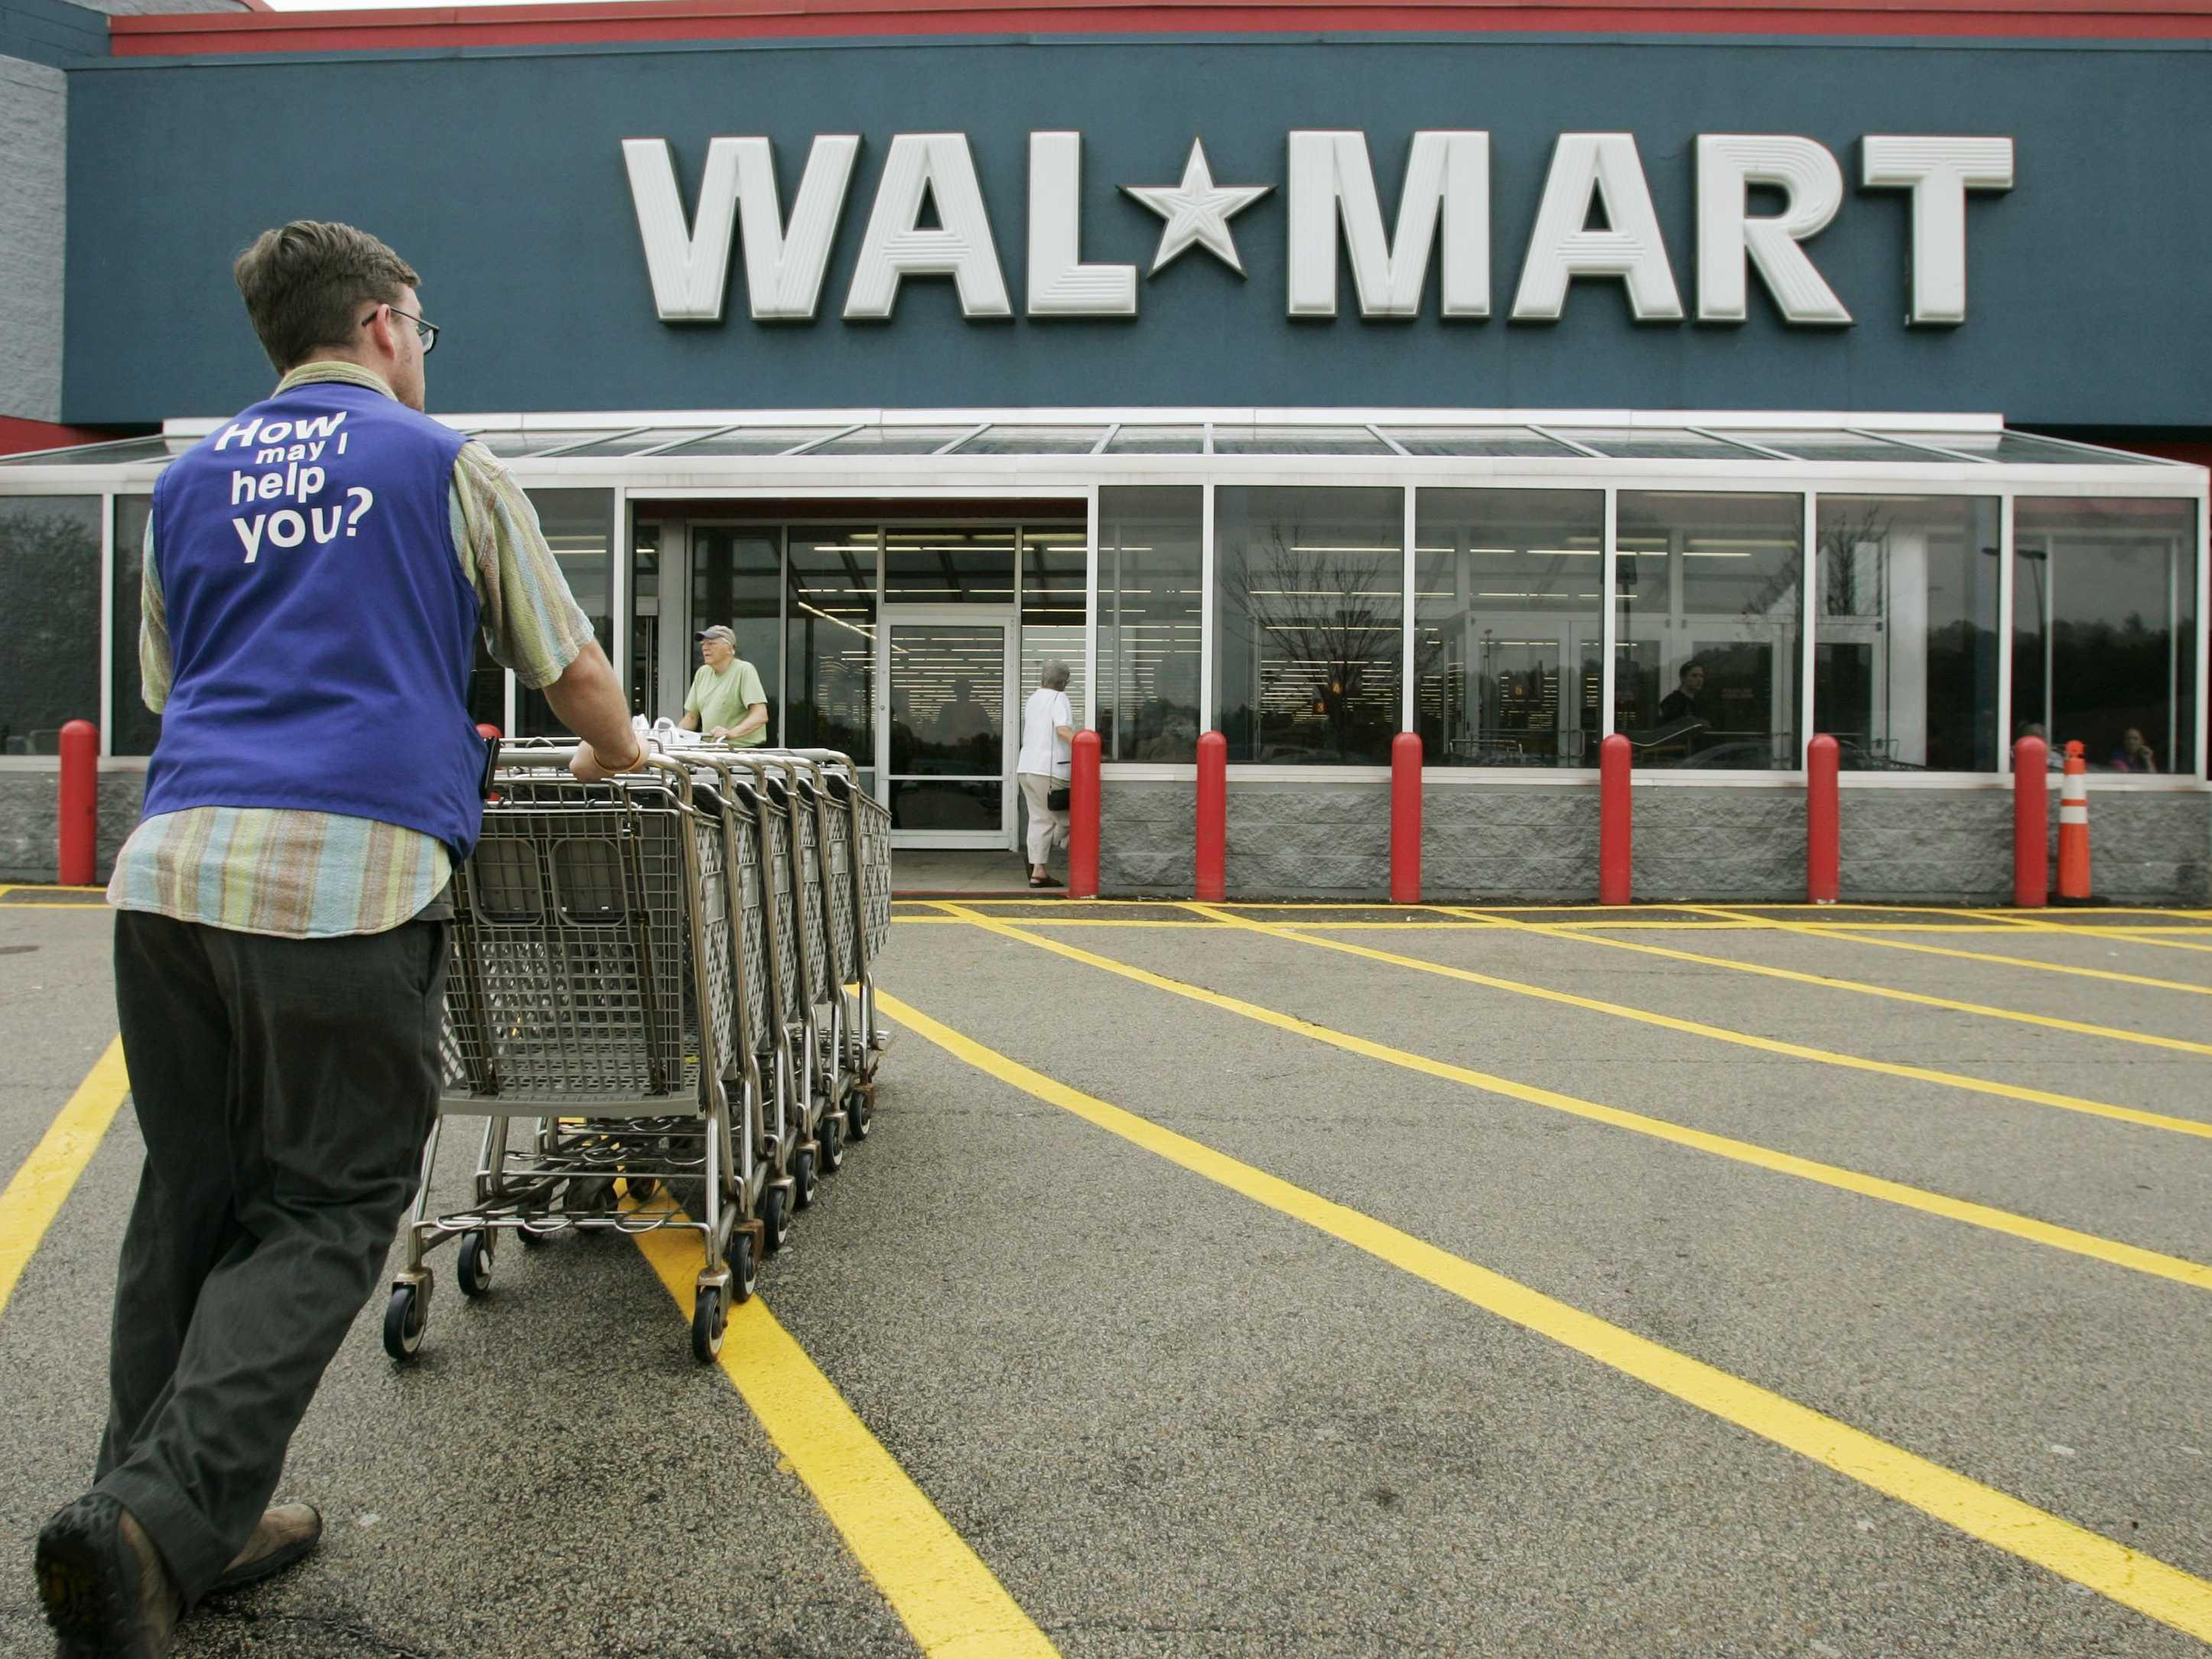 Walmart is closing hundreds of stores and laying off thousands of employees